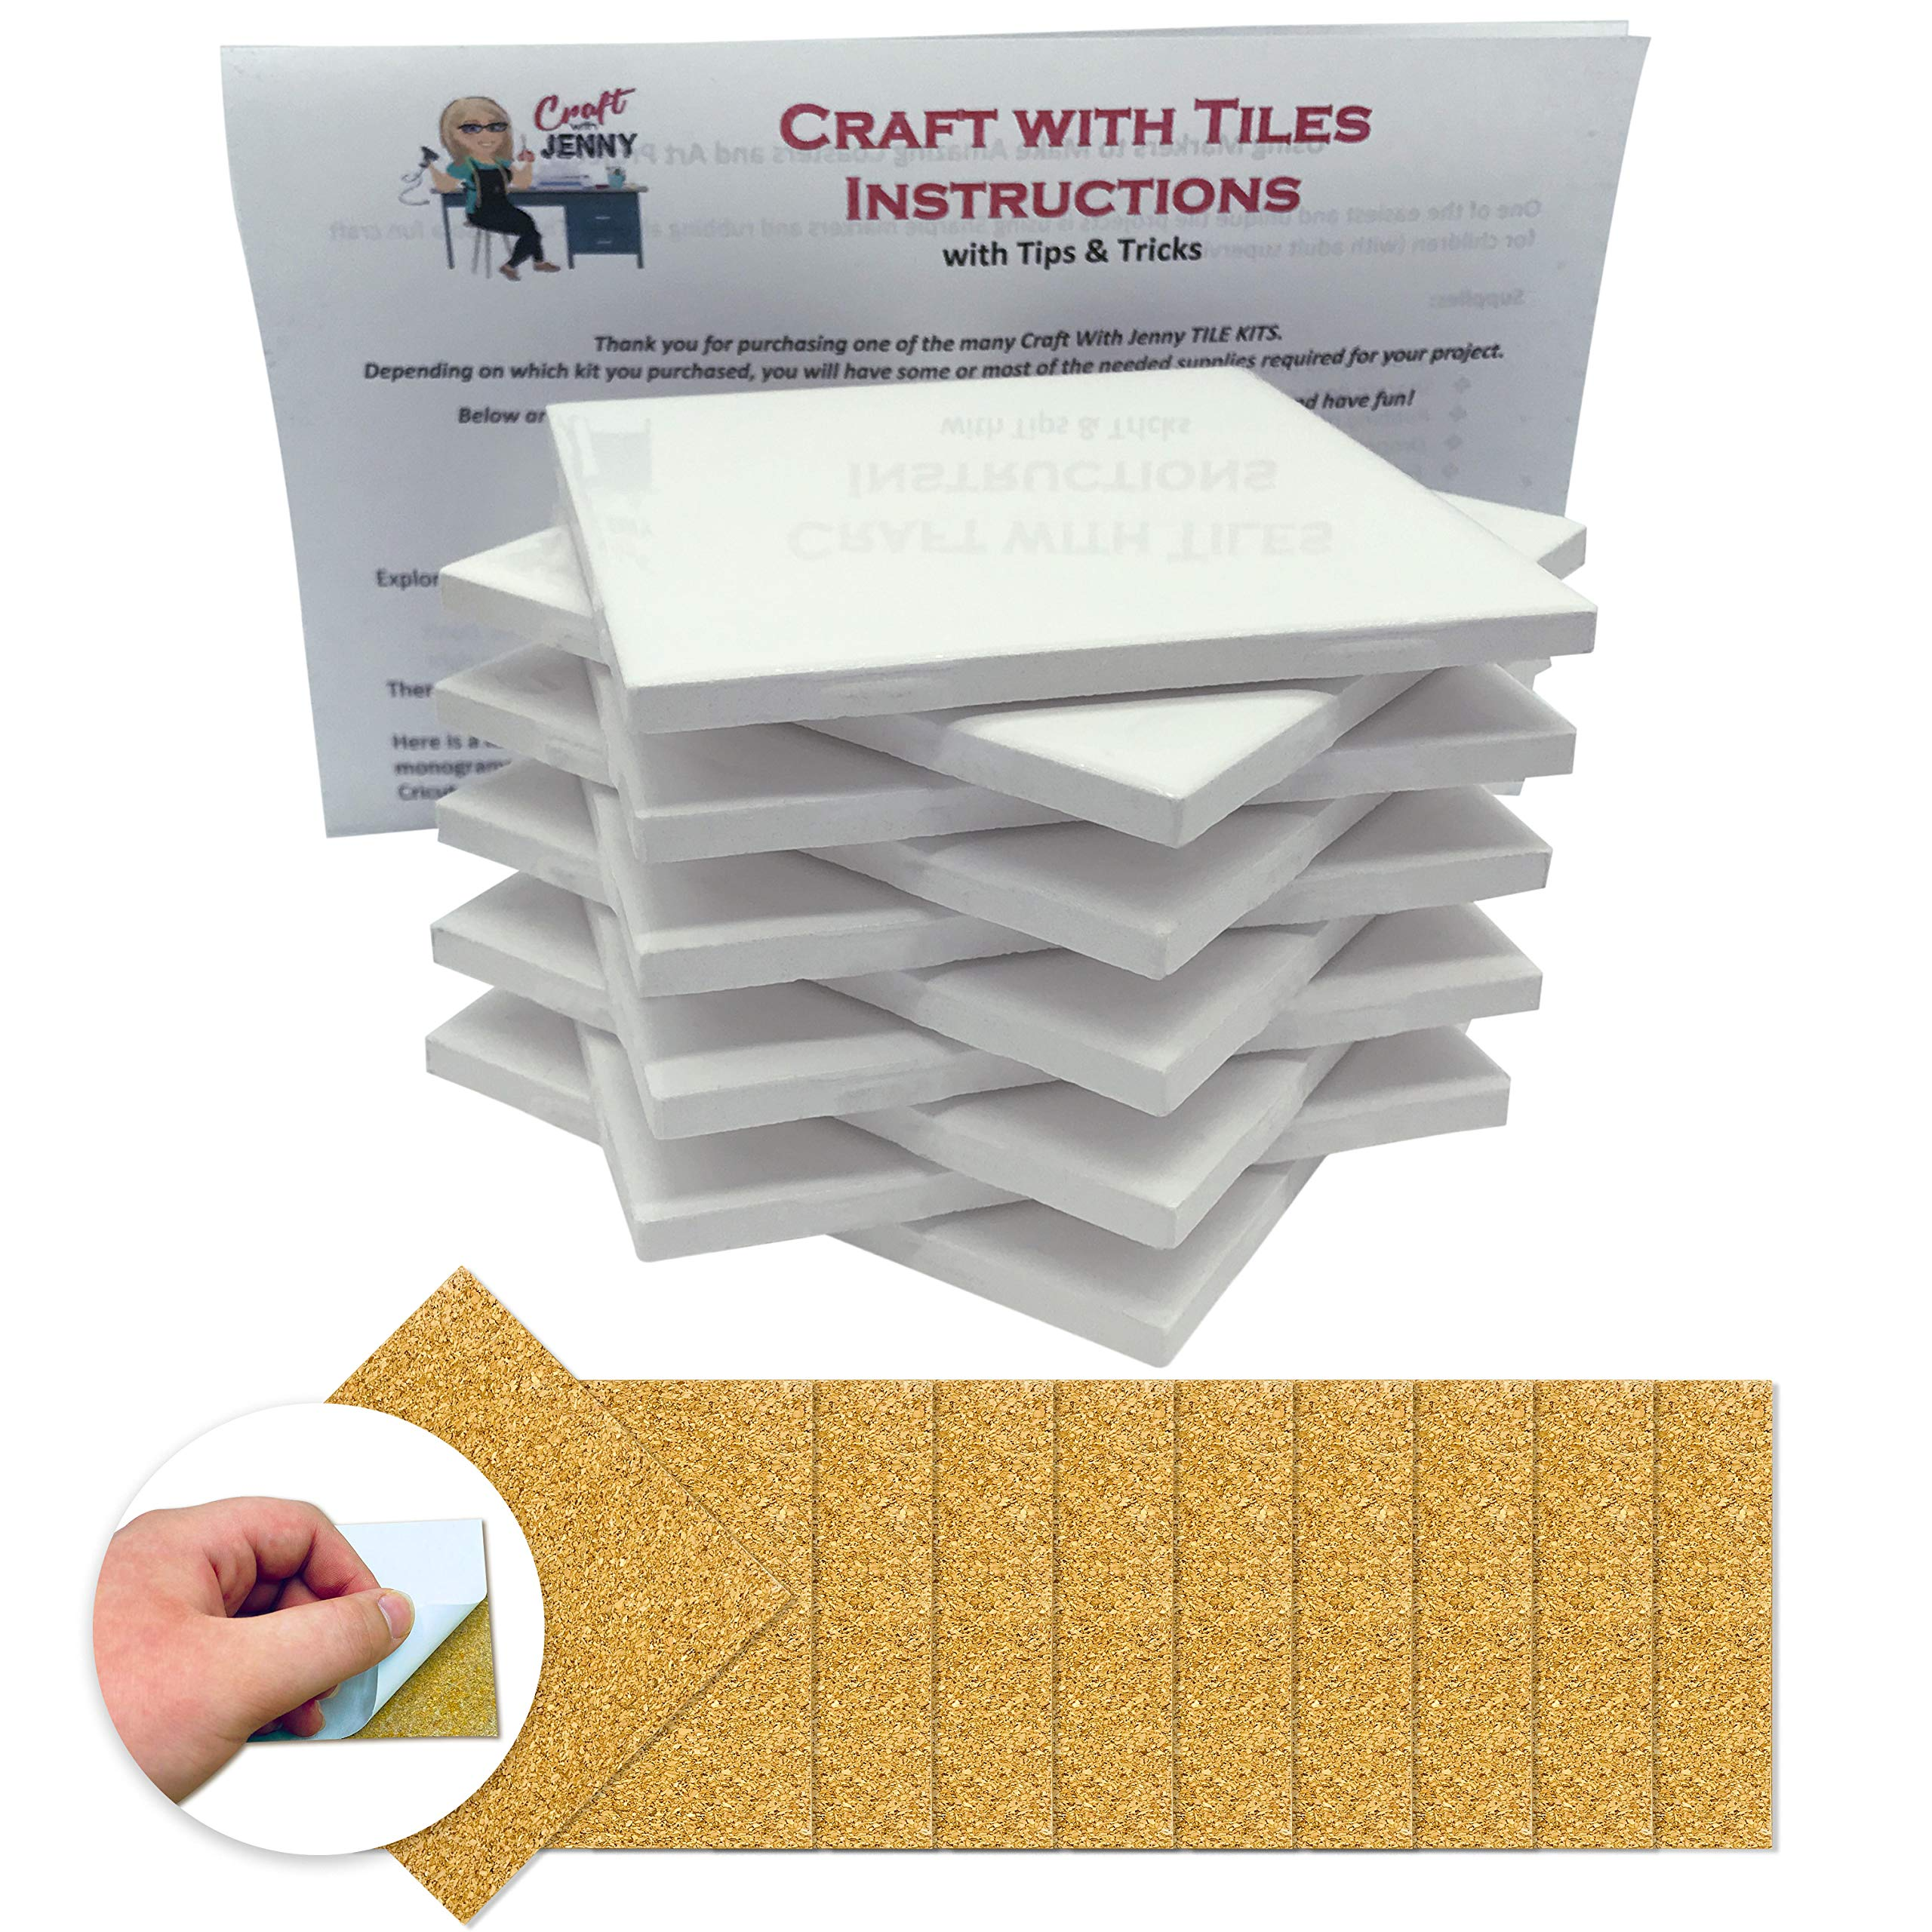 Amazon Com Coaster Tile Craft Kit Set Of 10 Glossy Ceramic White Tiles 4x4 W Detailed Instructions Plus Tips And Tricks Diy Make Your Own Coasters Mosaics Painting Projects Decoupage Alcohol Ink